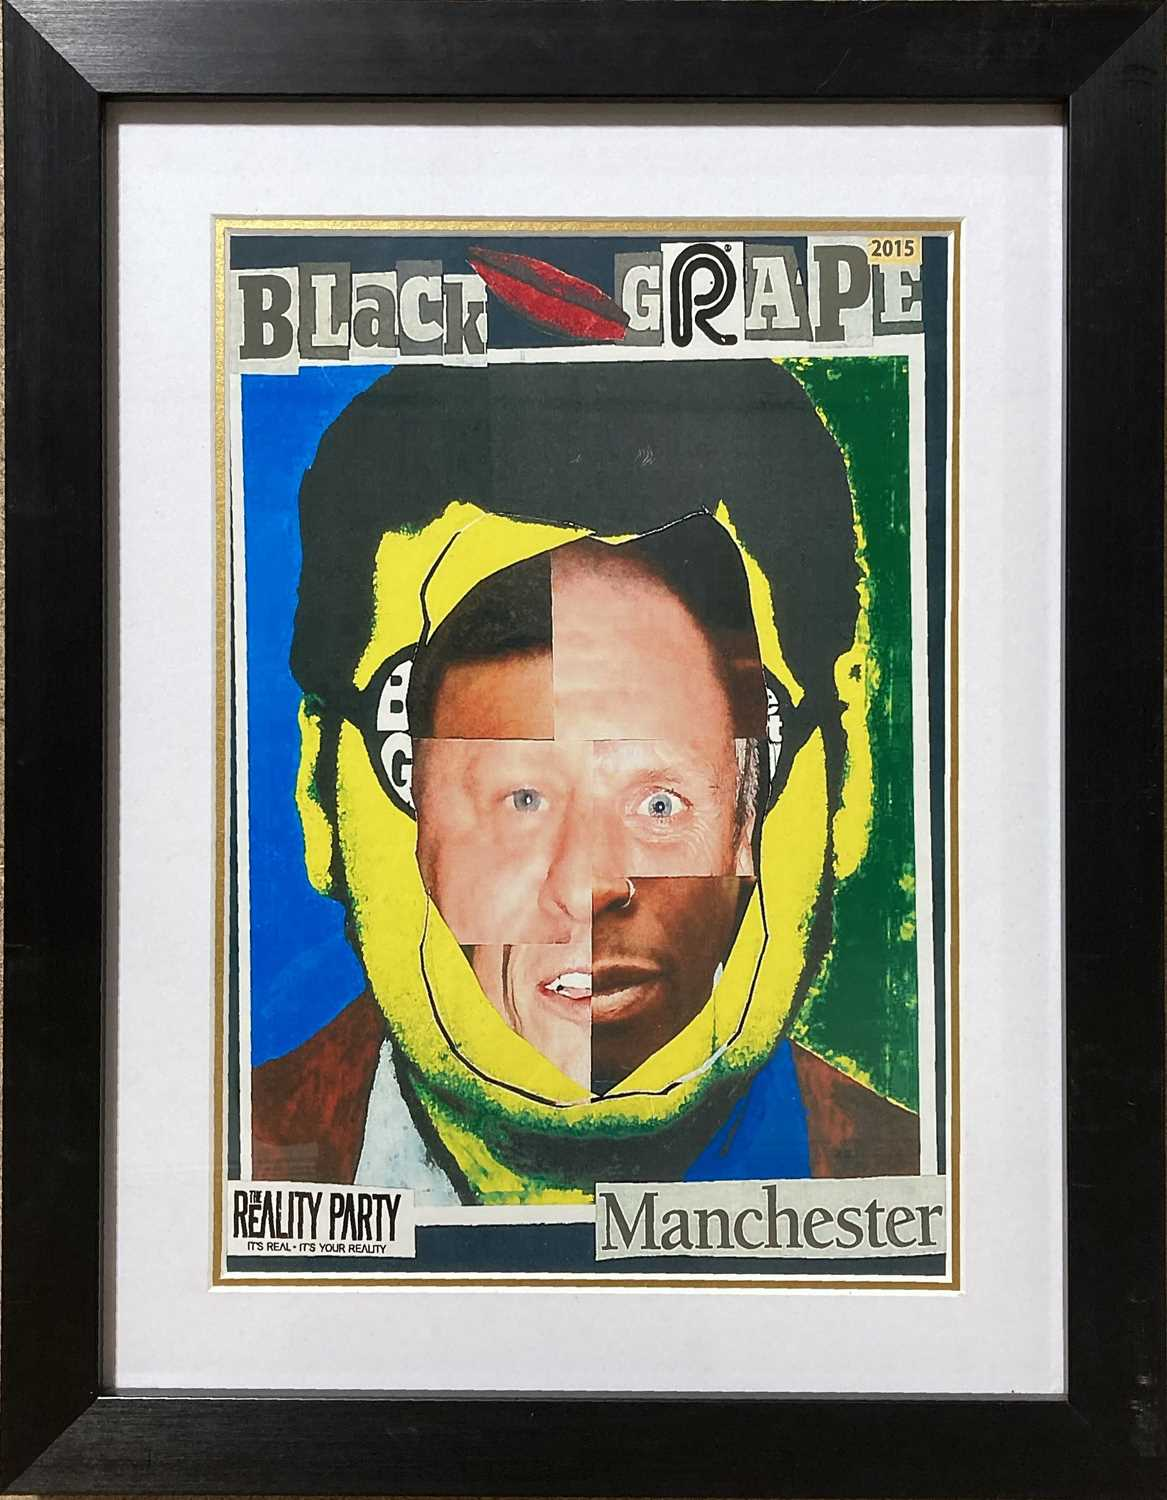 STONE ROSES / BLACK GRAPE POSTERS. - Image 5 of 5